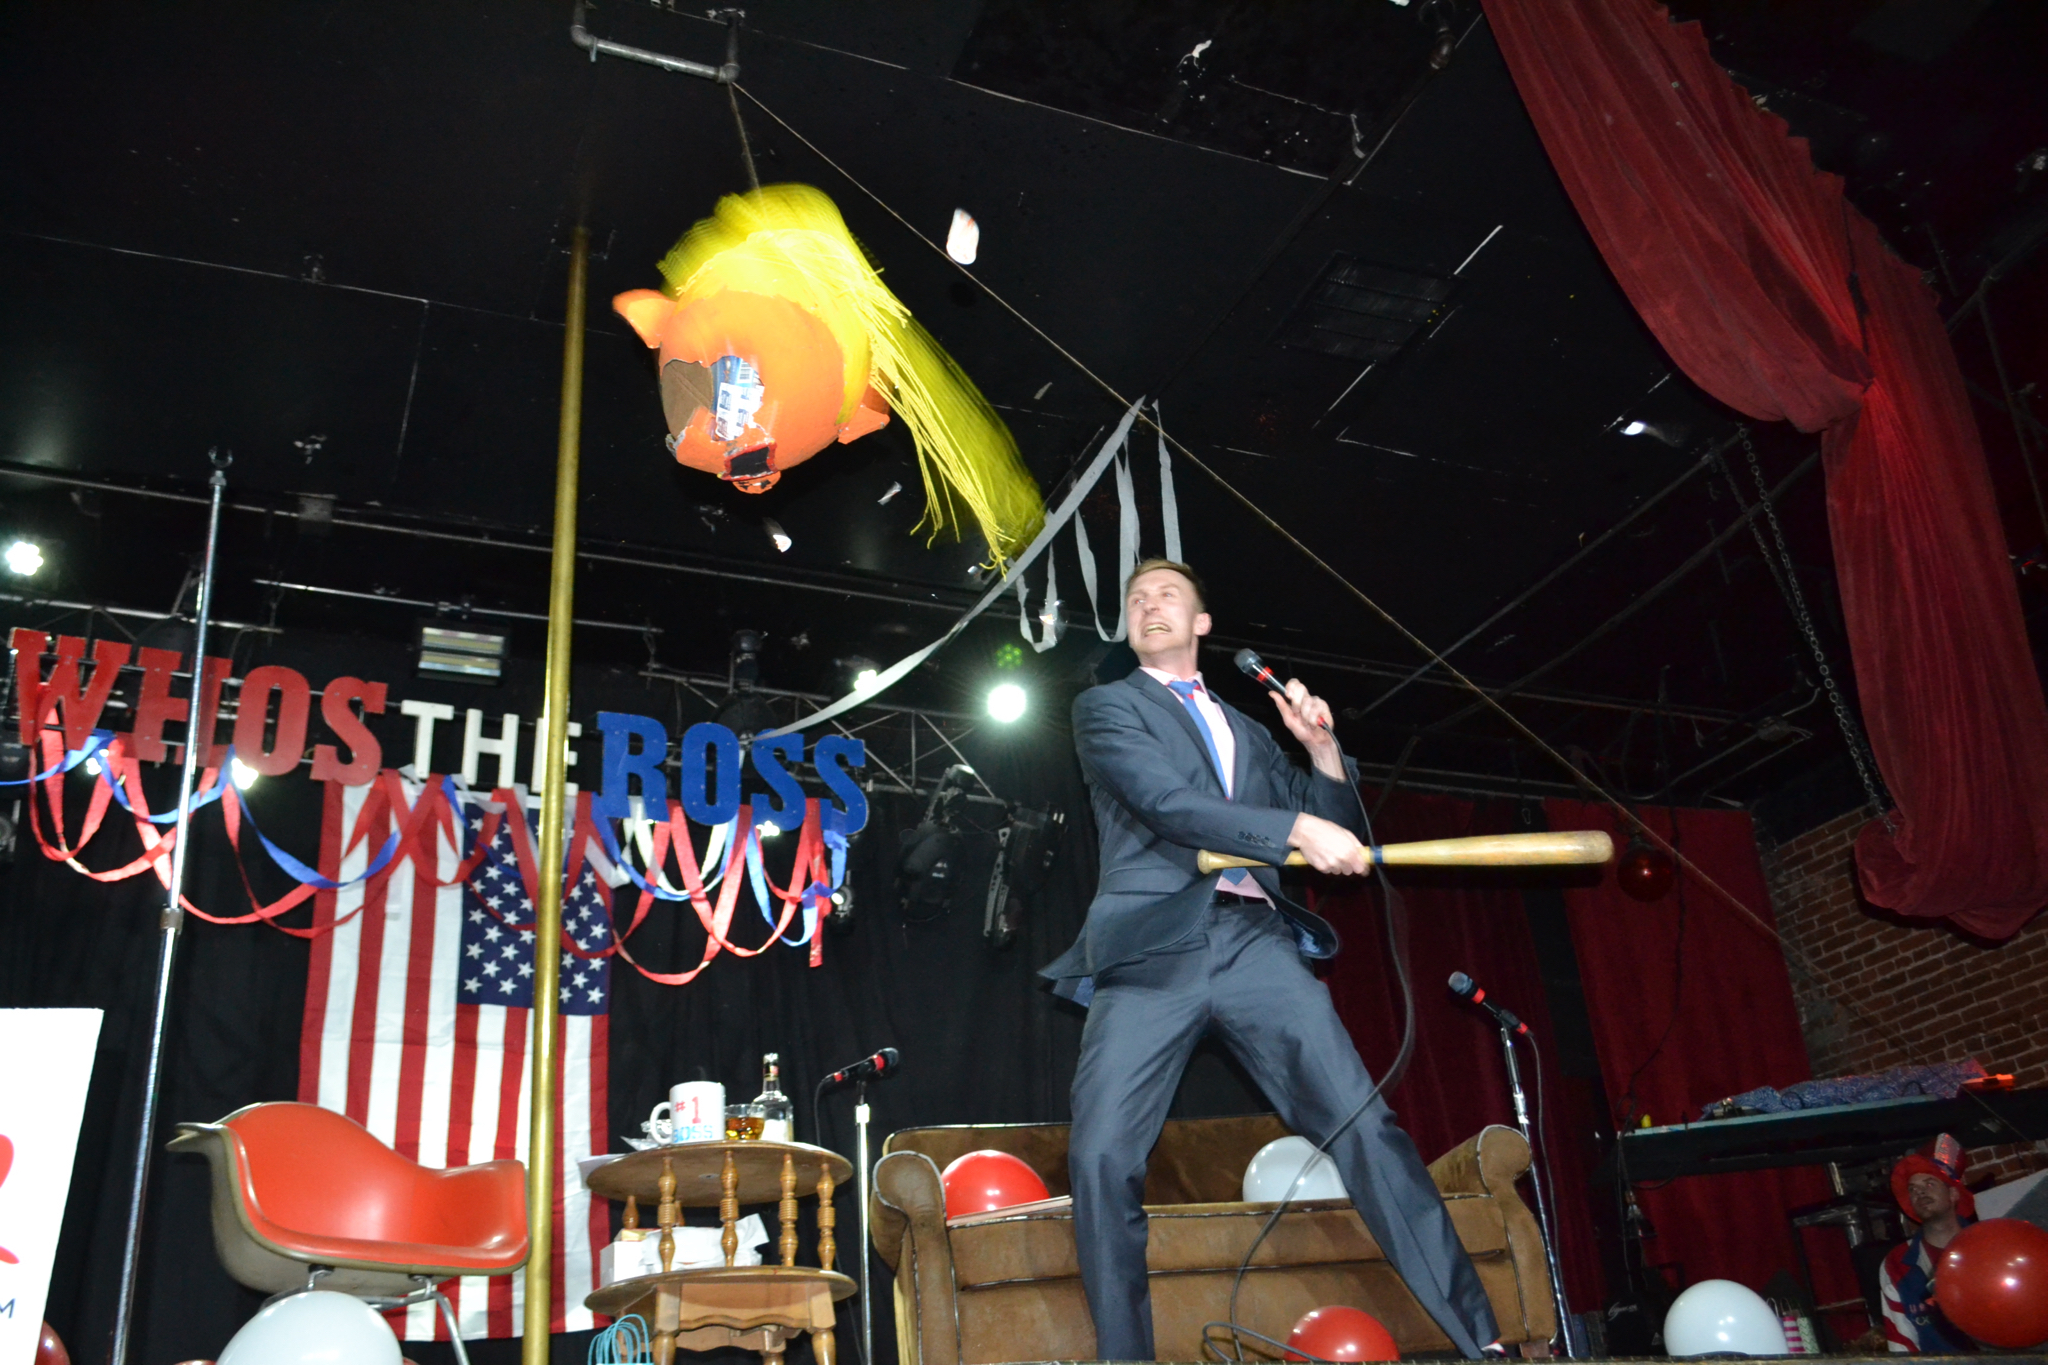 """""""Who's the Ross?"""" whos the ross Aaron PDX Portland comedy comedian late-night talk show Dante's Trump pinata"""